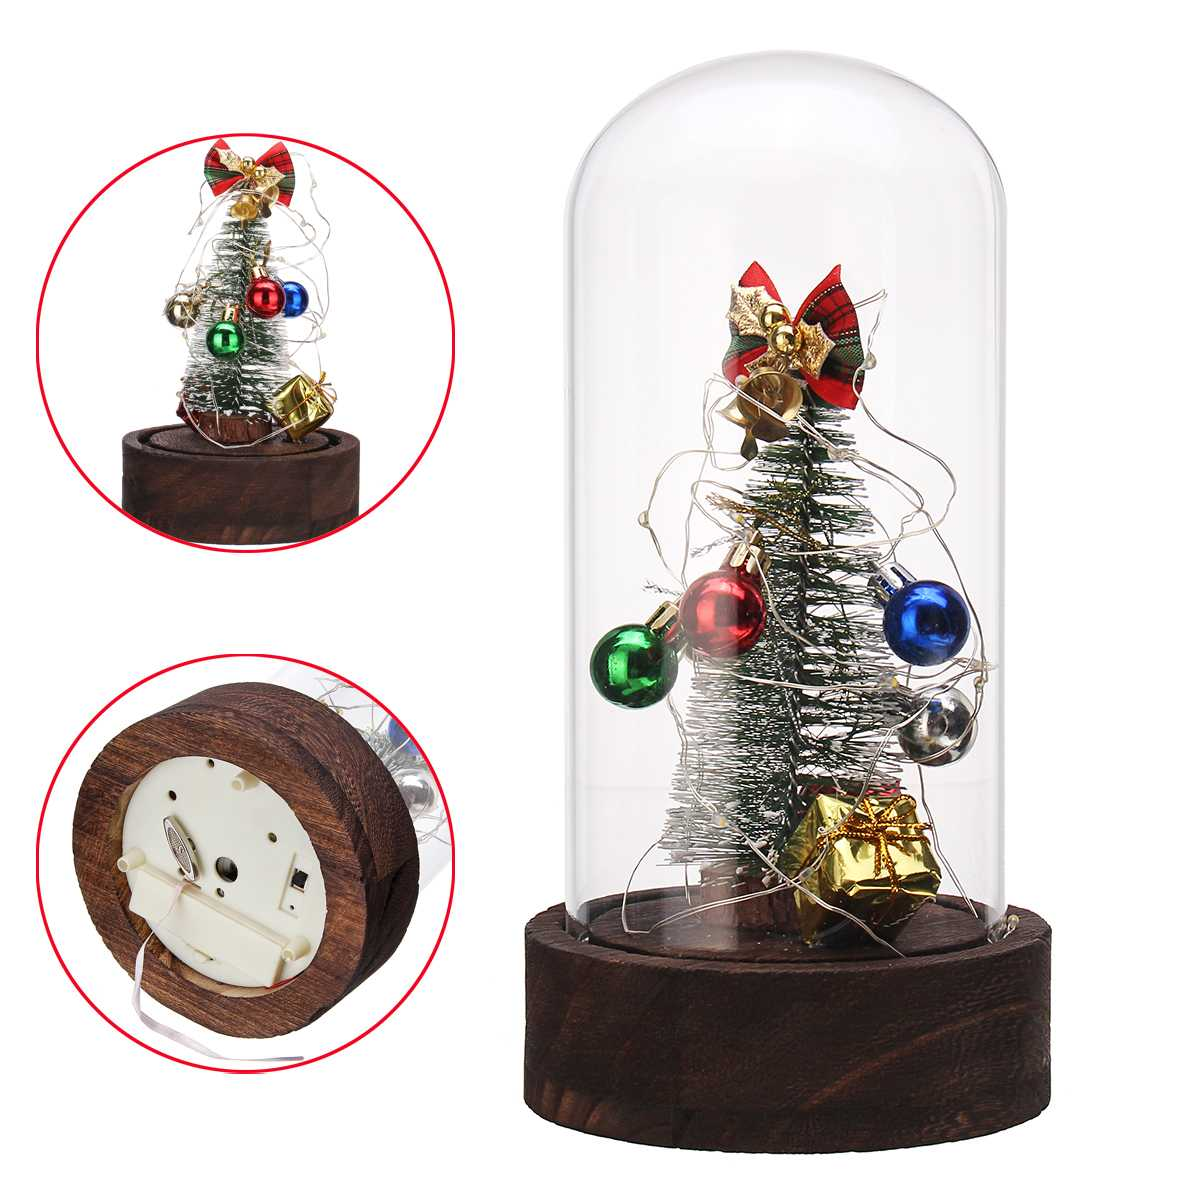 цена на Christmas Tree Jingle Bell Ornaments Gift Glass Dome Bell Jar + Fairy LED Lights Wooden Base with Music Box Song For Home Decor